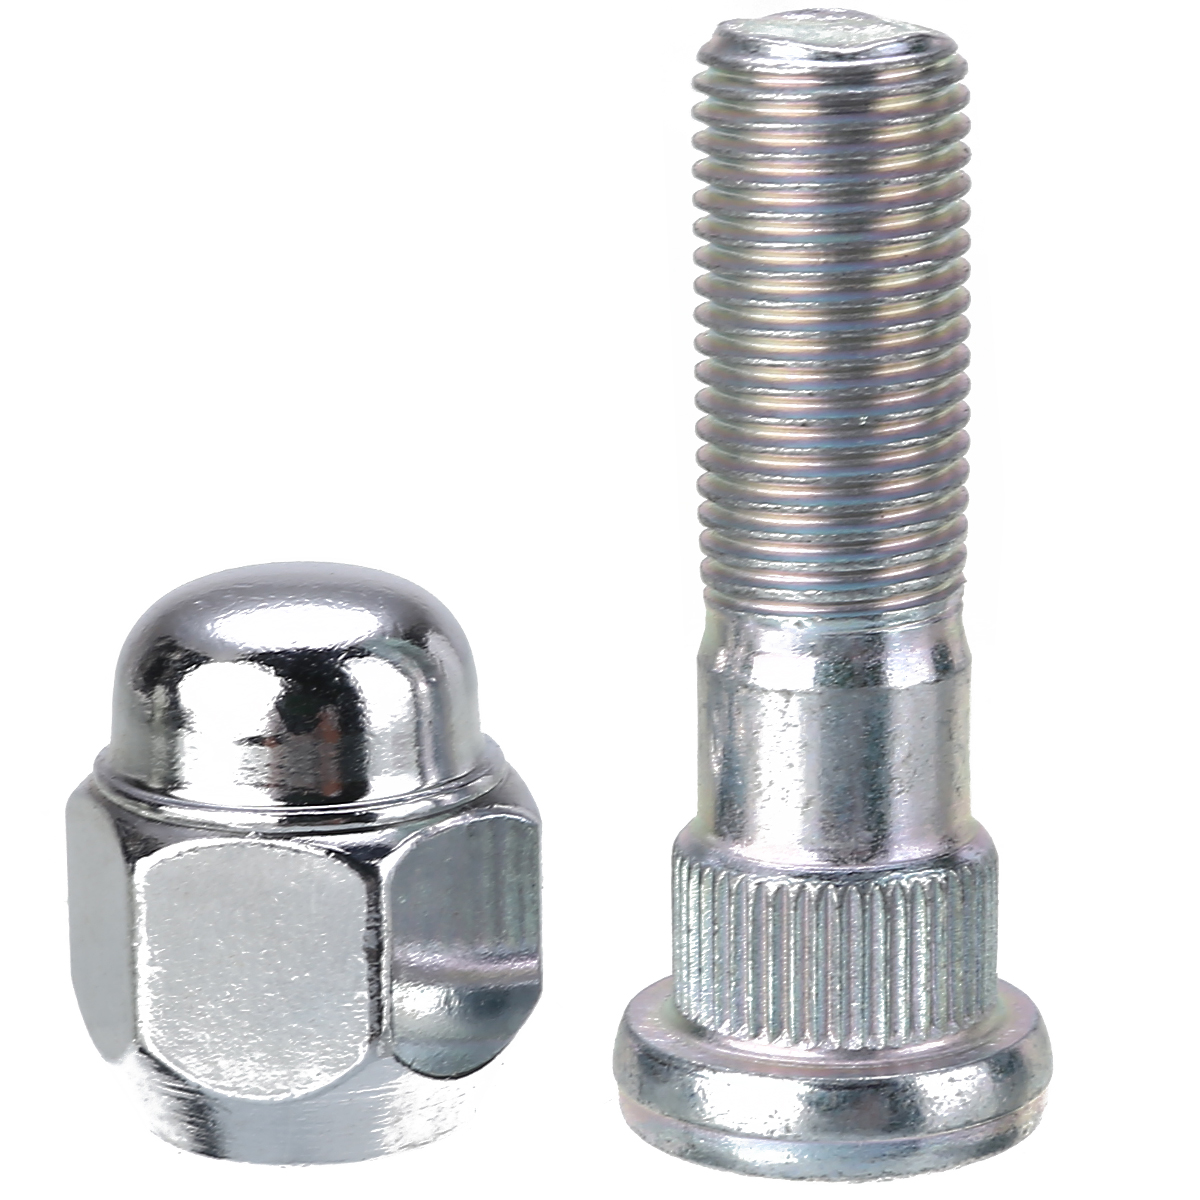 SUBARU Genuine 28365FE001 Hub Bolt 1 Pack